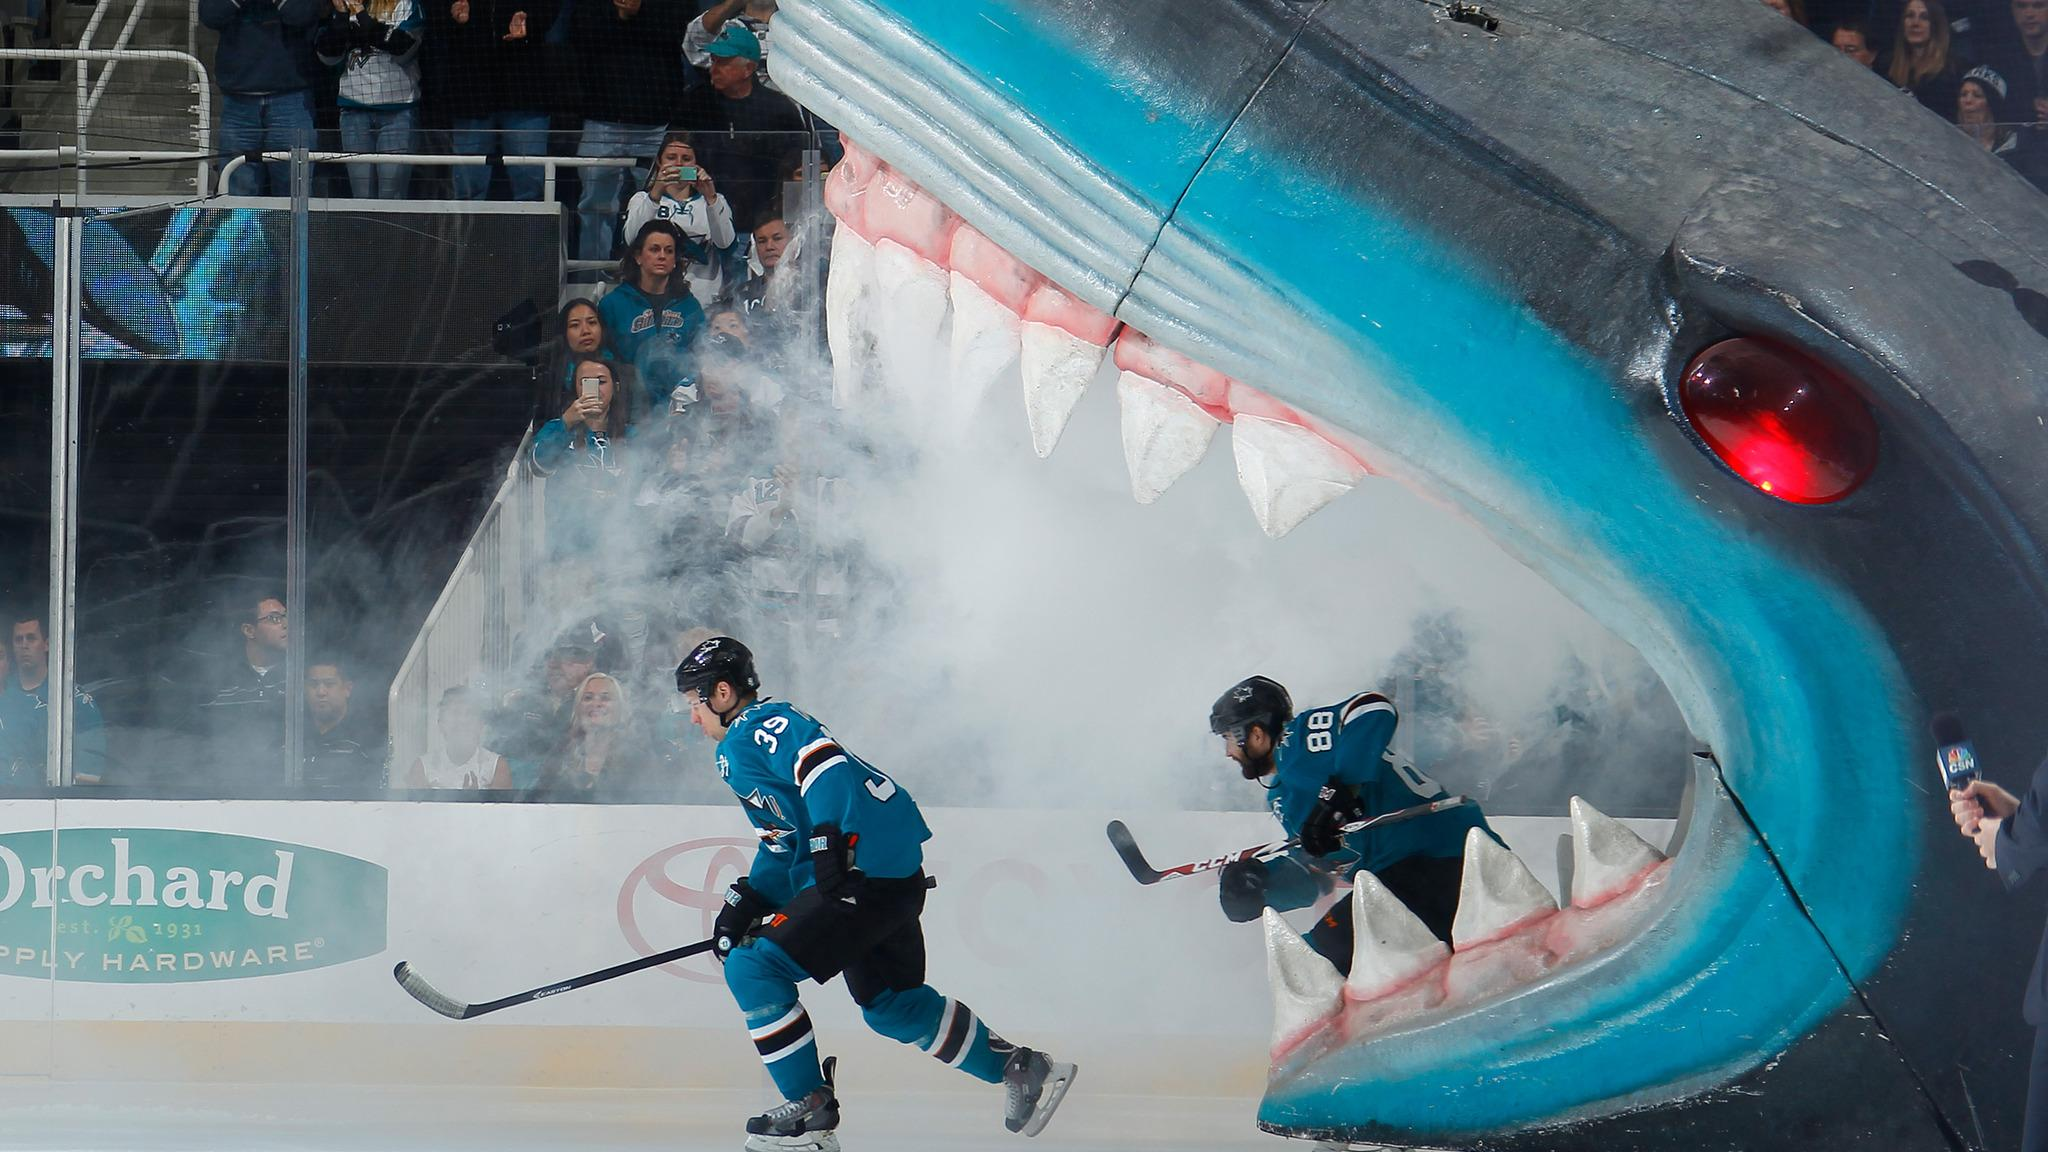 San Jose Sharks vs. Washington Capitals